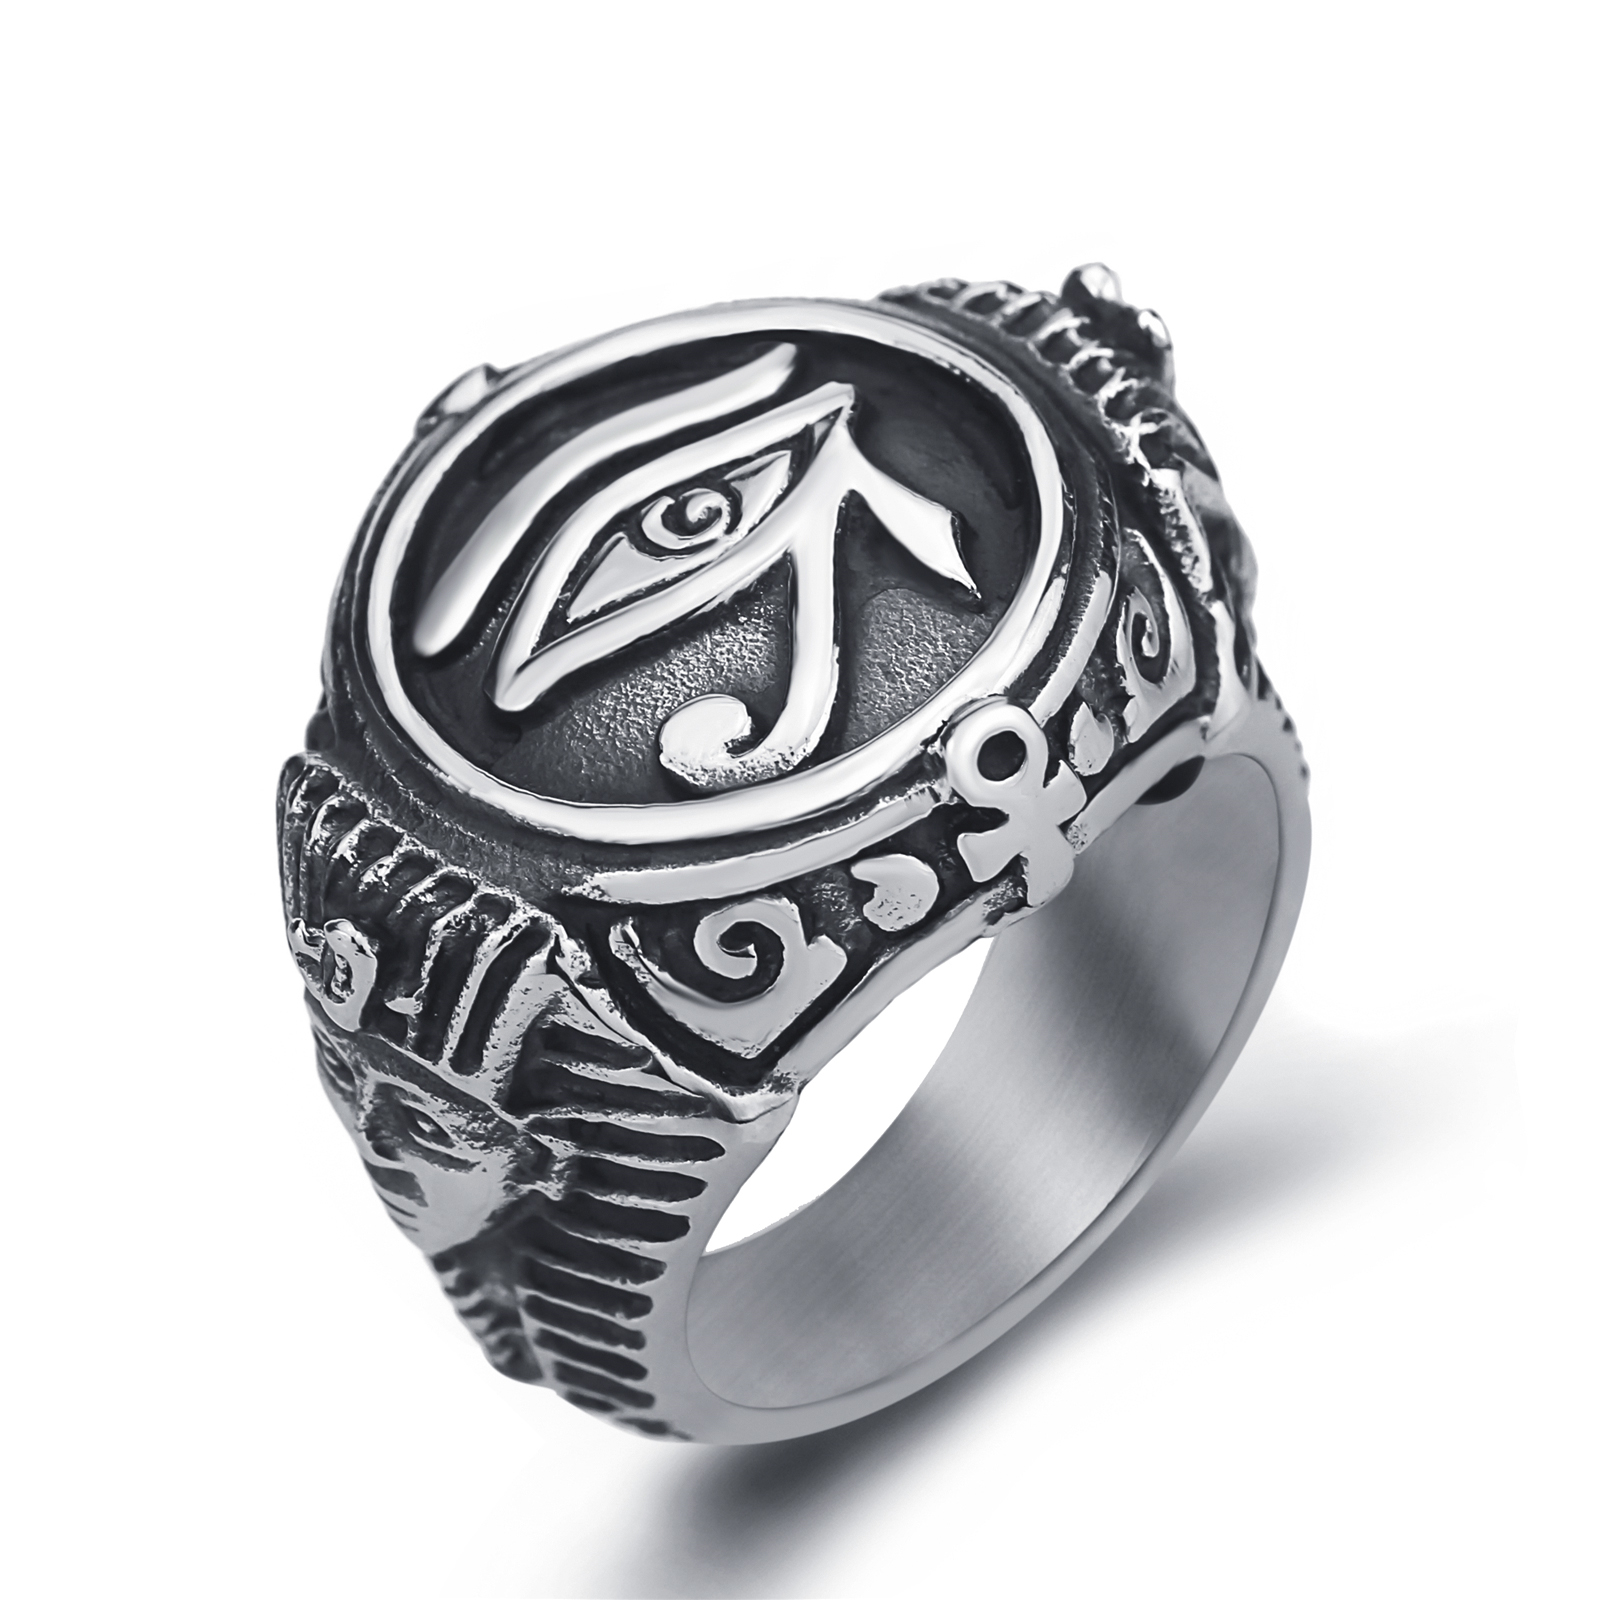 ring ankh egypt of rings egyptian products sterling hieroglyphs eye horus silver udjat wedding